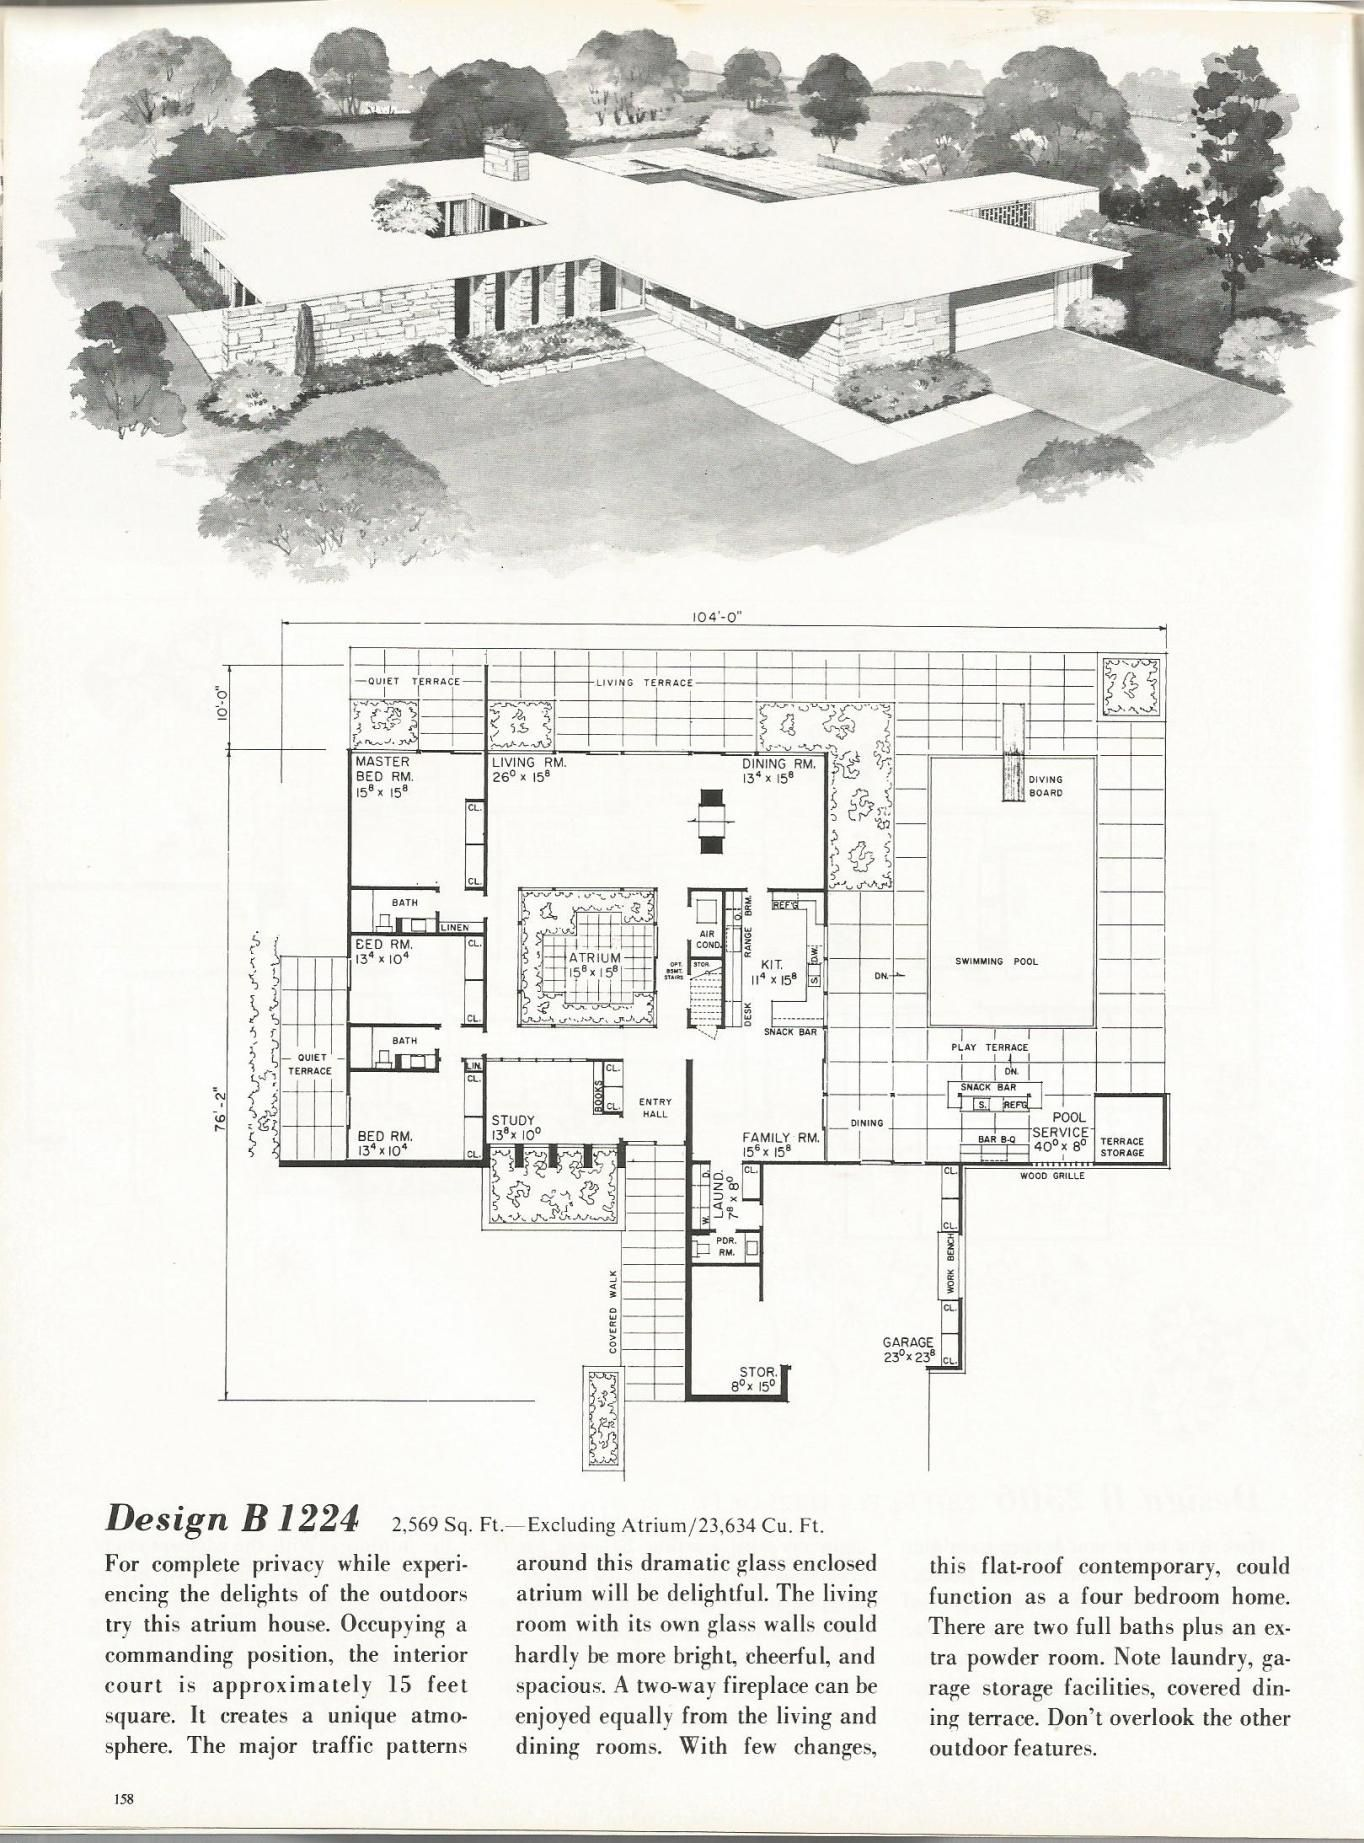 Gotta have an Atrium. Vintage House Plans, Mid Century Homes, 1960s on ranch blueprints, simple ranch floor plans, simple square house floor plans, ranch home design plans, simple one floor house plans, ranch home drawings, ranch home floor designs, ranch home interior, ranch home floor plans, ranch home pricing, ranch home construction plans, simple home floor plans, ranch house plans, ranch home elevations,